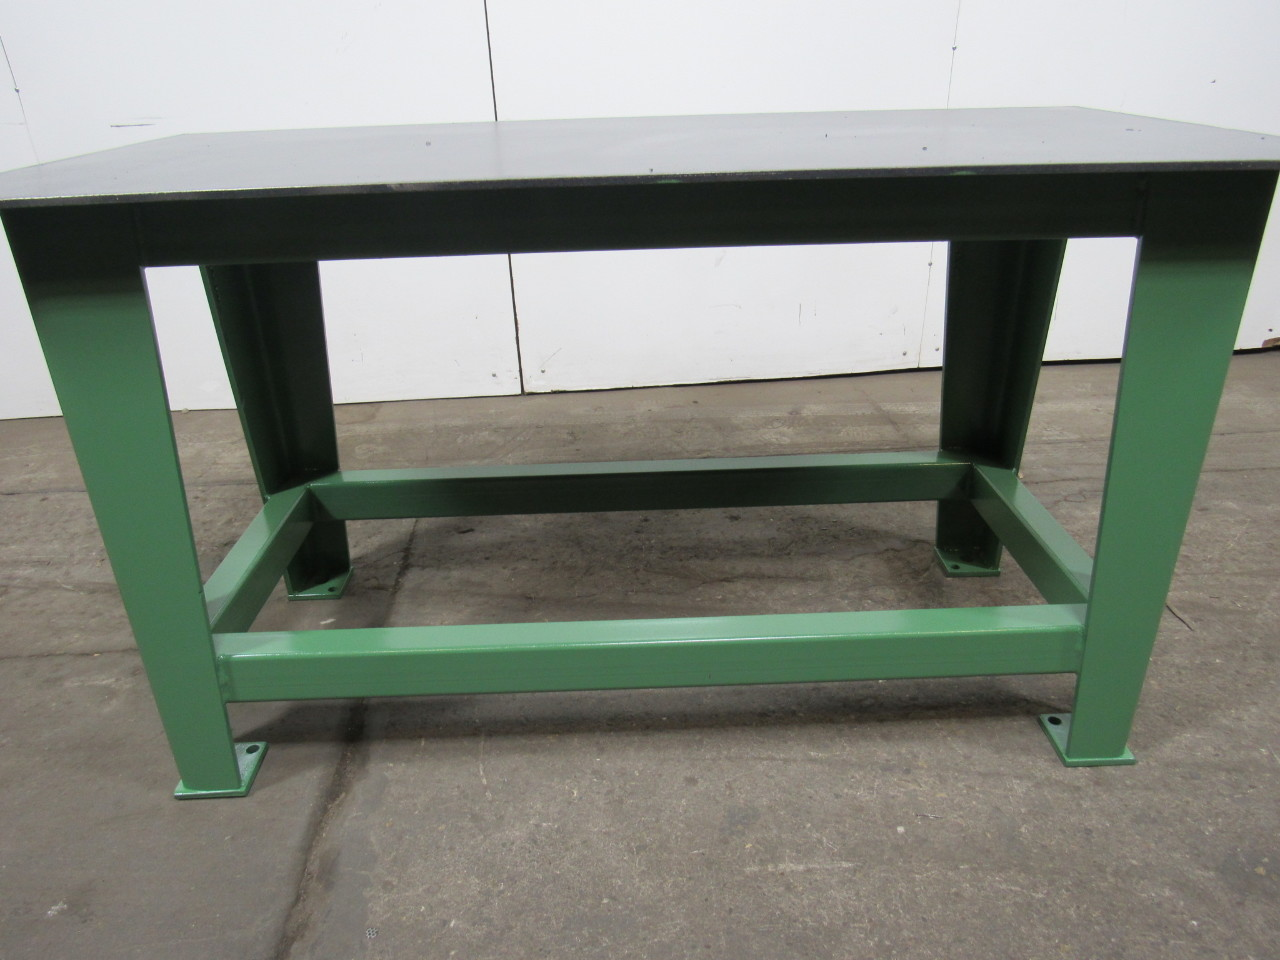 Steel Welding Work Bench Assembly Layout Table 60 X 30 3